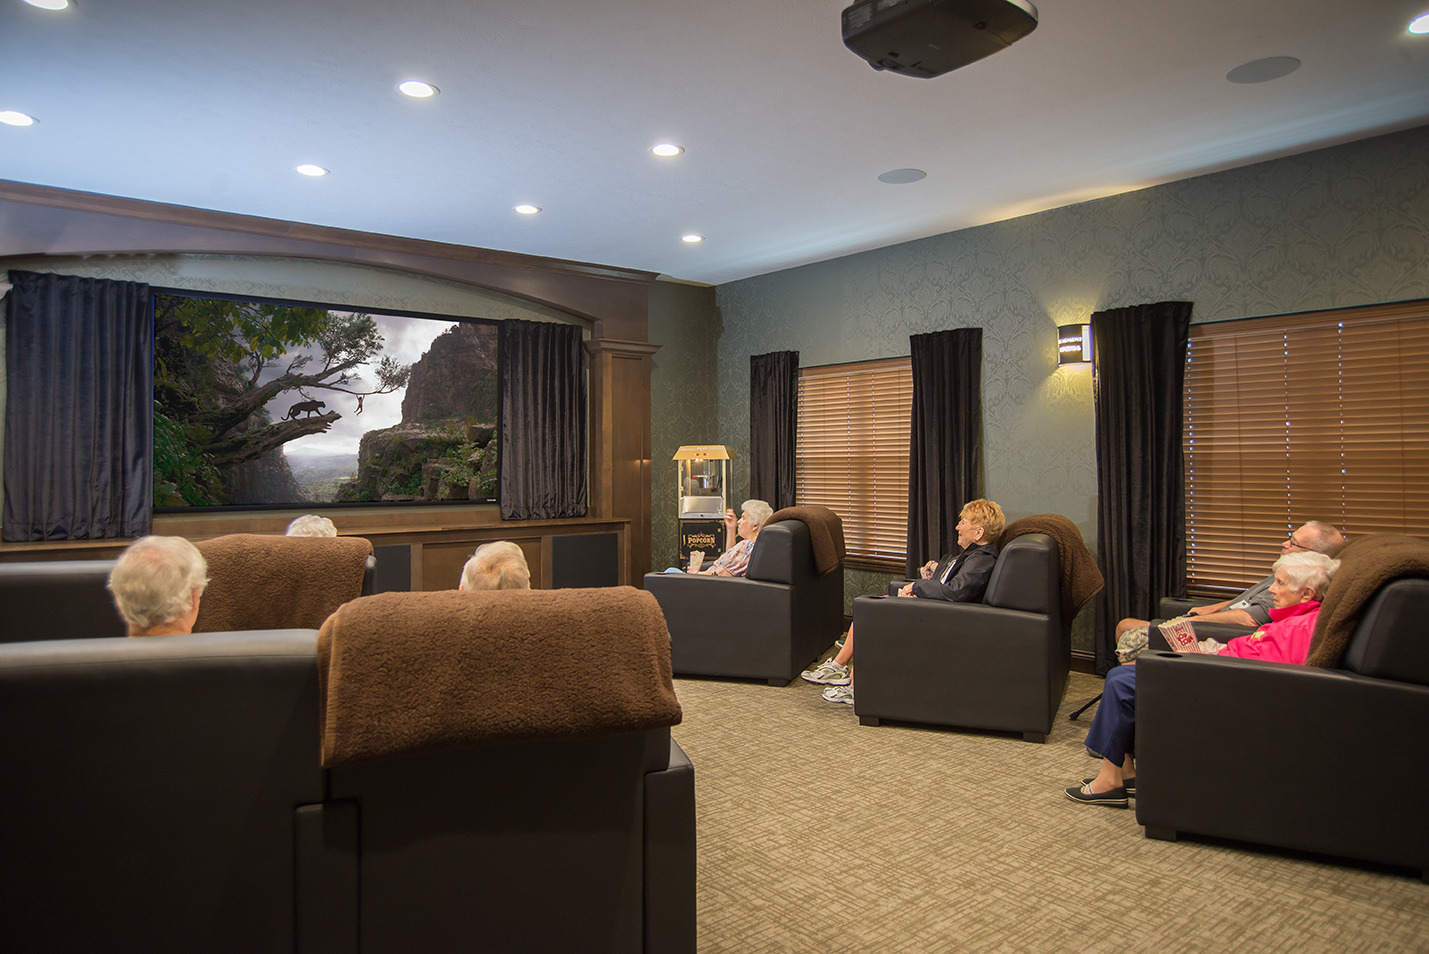 Services & Amenities for Seniors in Loveland, OH